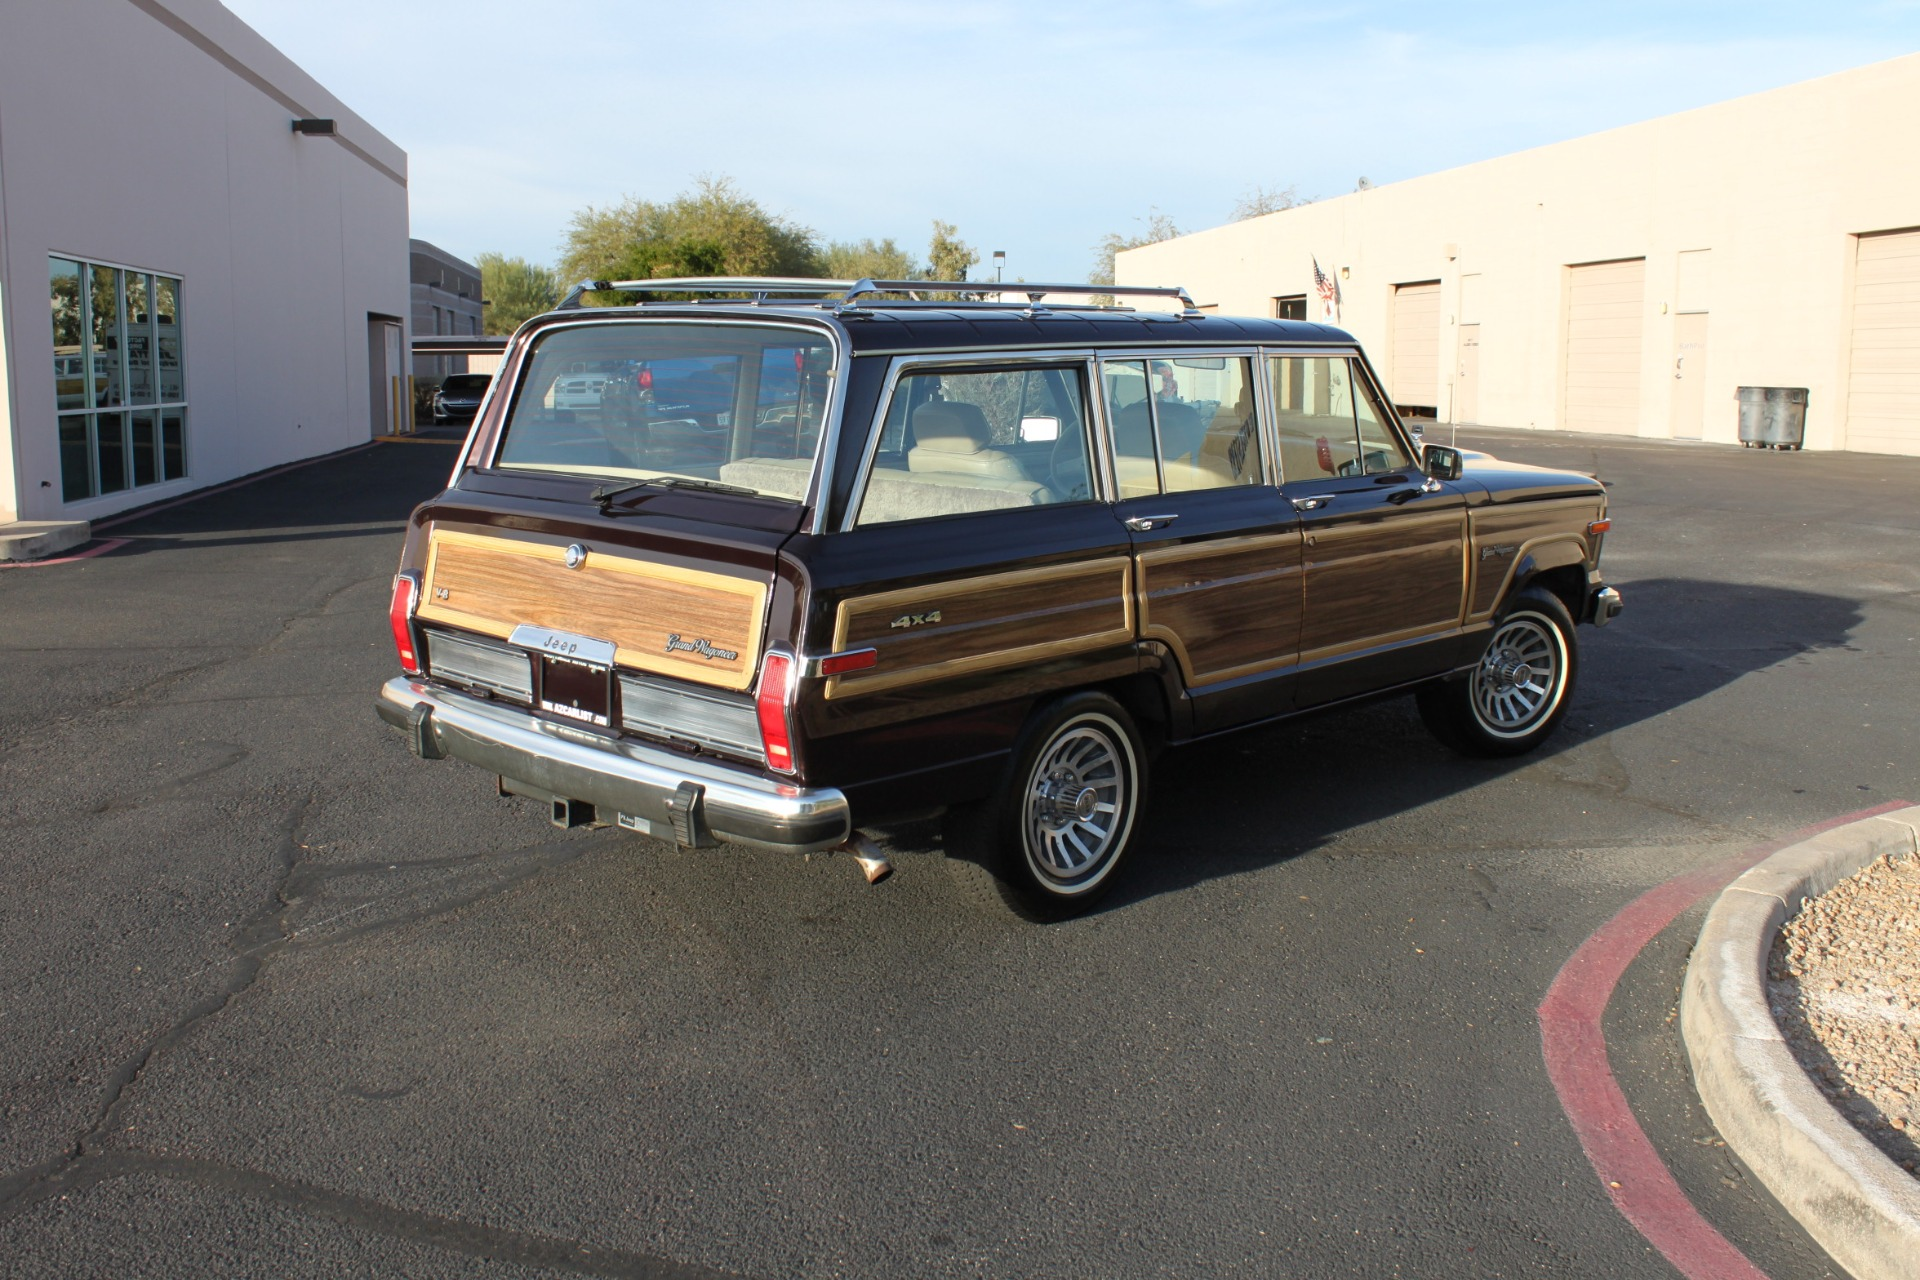 Used-1990-Jeep-Grand-Wagoneer-4X4-Chalenger